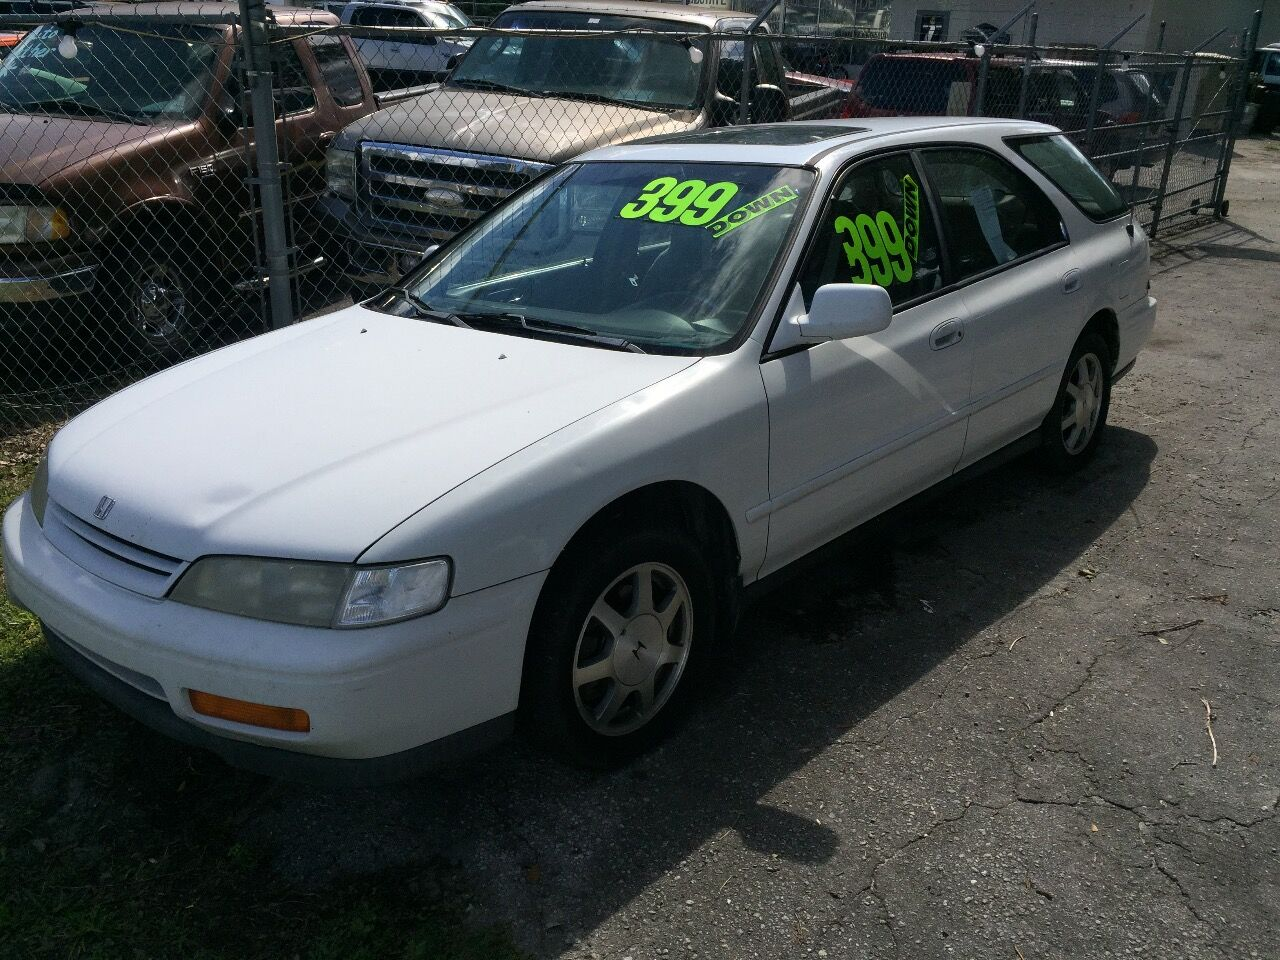 used 1995 honda accord for sale carsforsale com used 1995 honda accord for sale